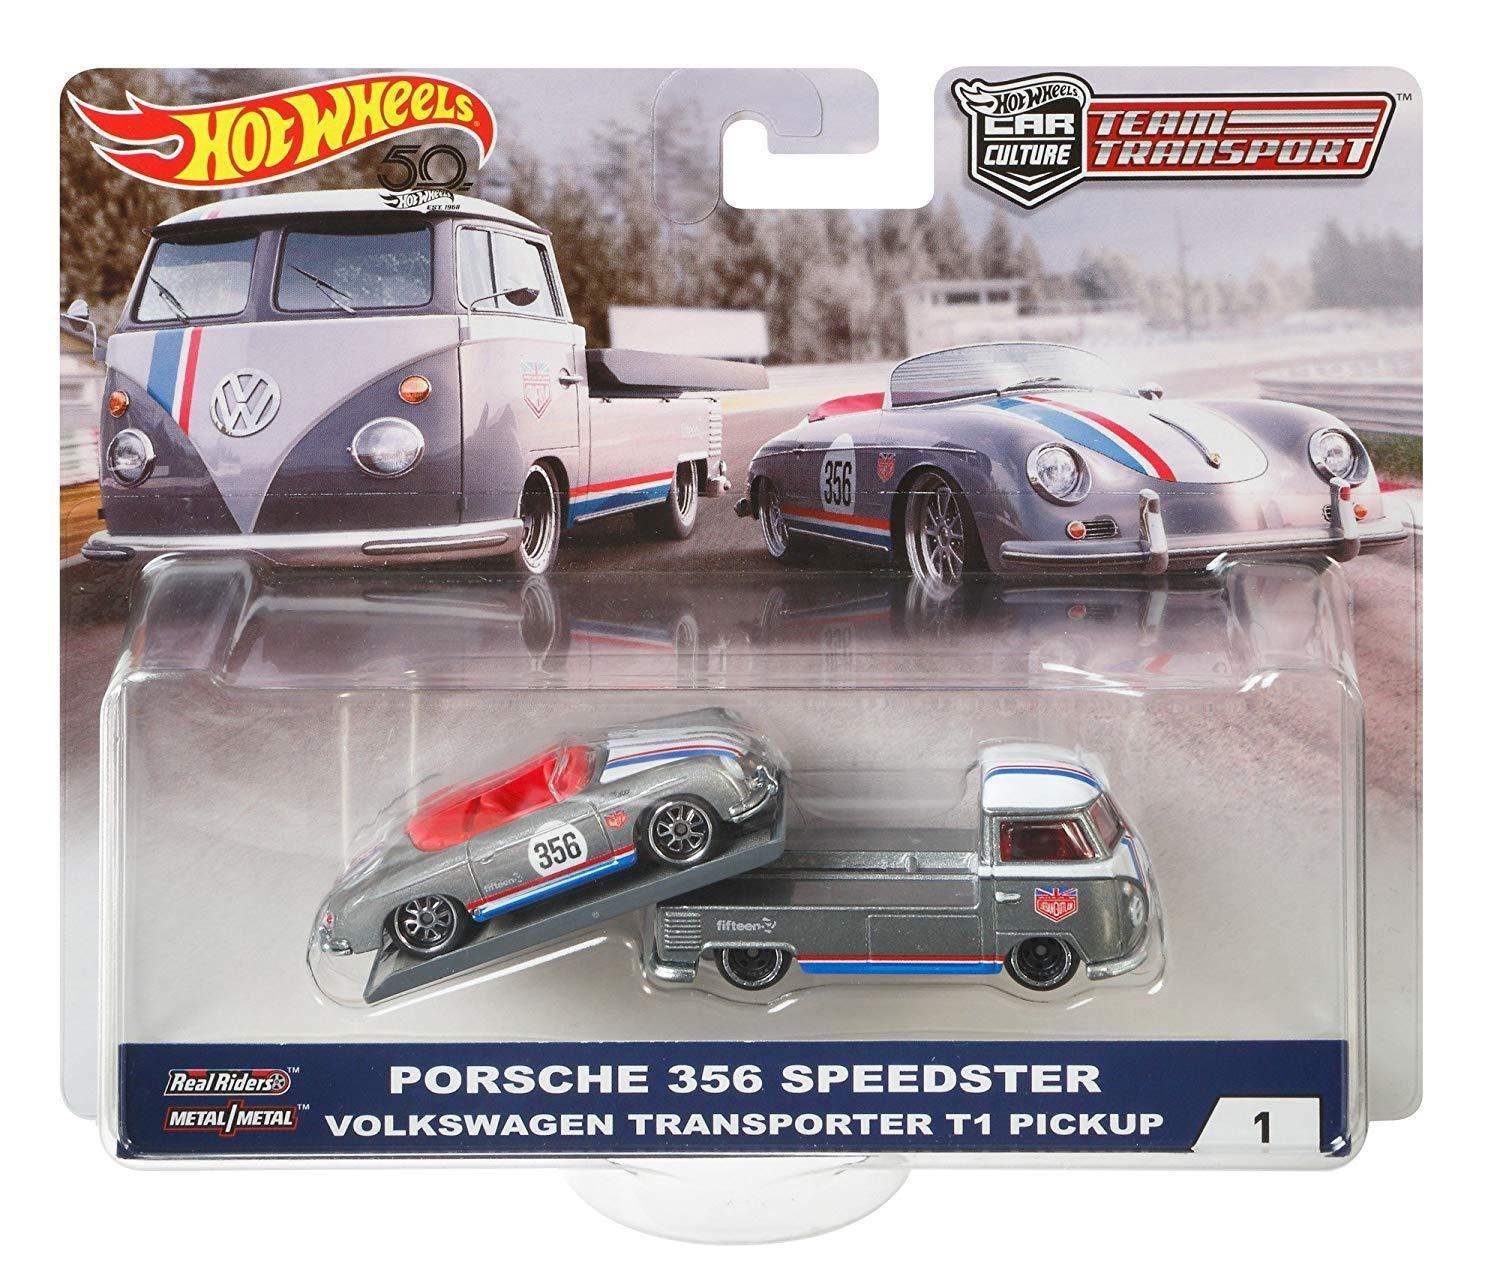 Hot Wheels 2018 Car Culture Team Transport Porsche 356 Speedster Volkswagen Transporter T1... by